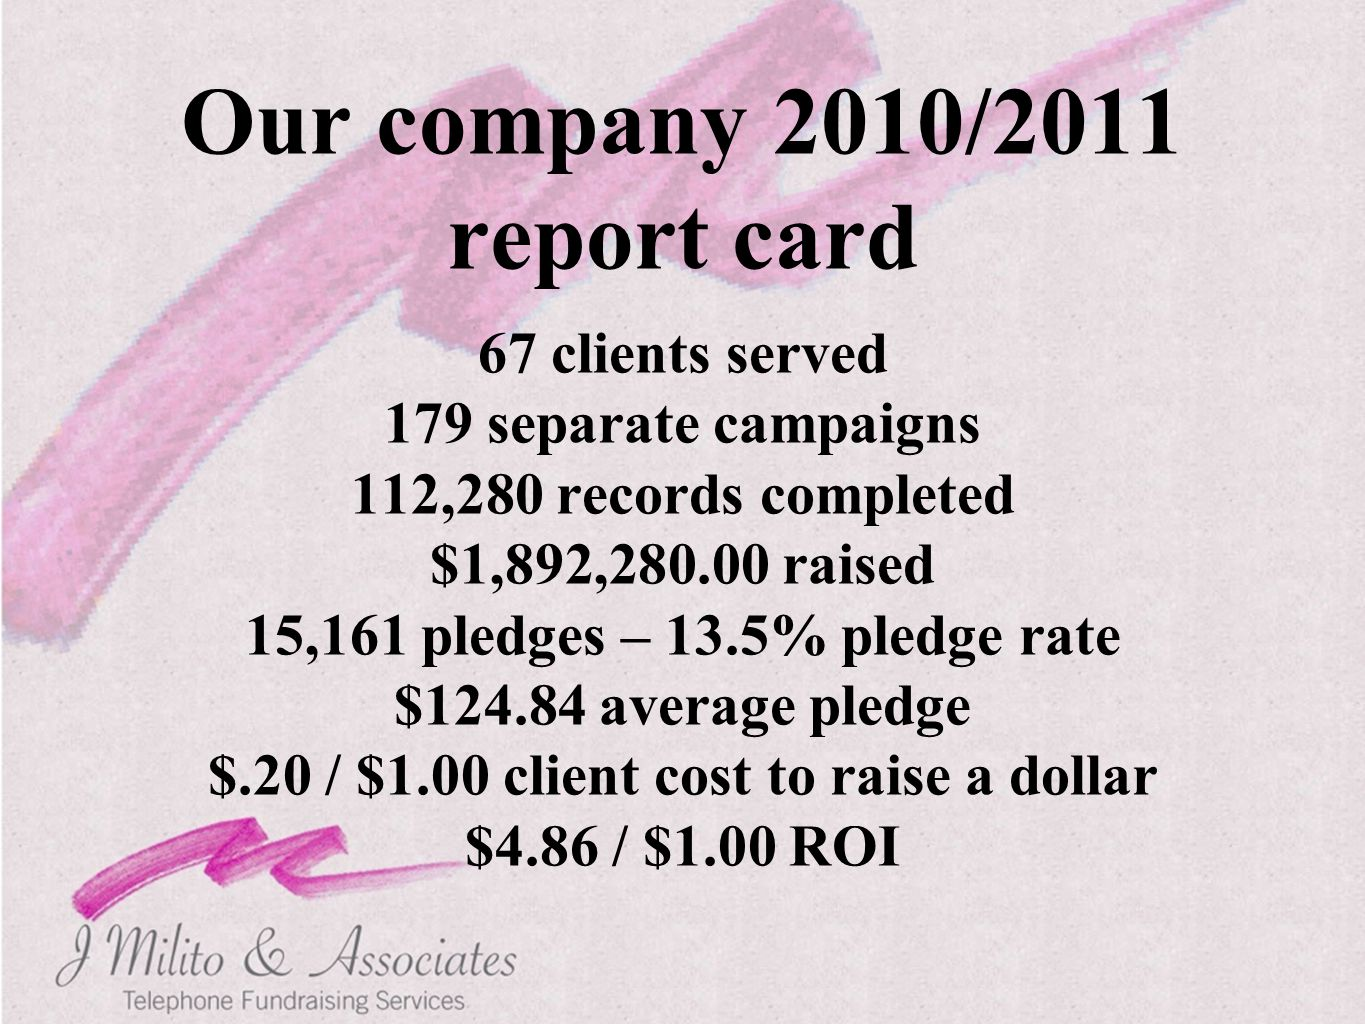 Our company 2010/2011 report card 67 clients served 179 separate campaigns 112,280 records completed $1,892,280.00 raised 15,161 pledges – 13.5% pledg